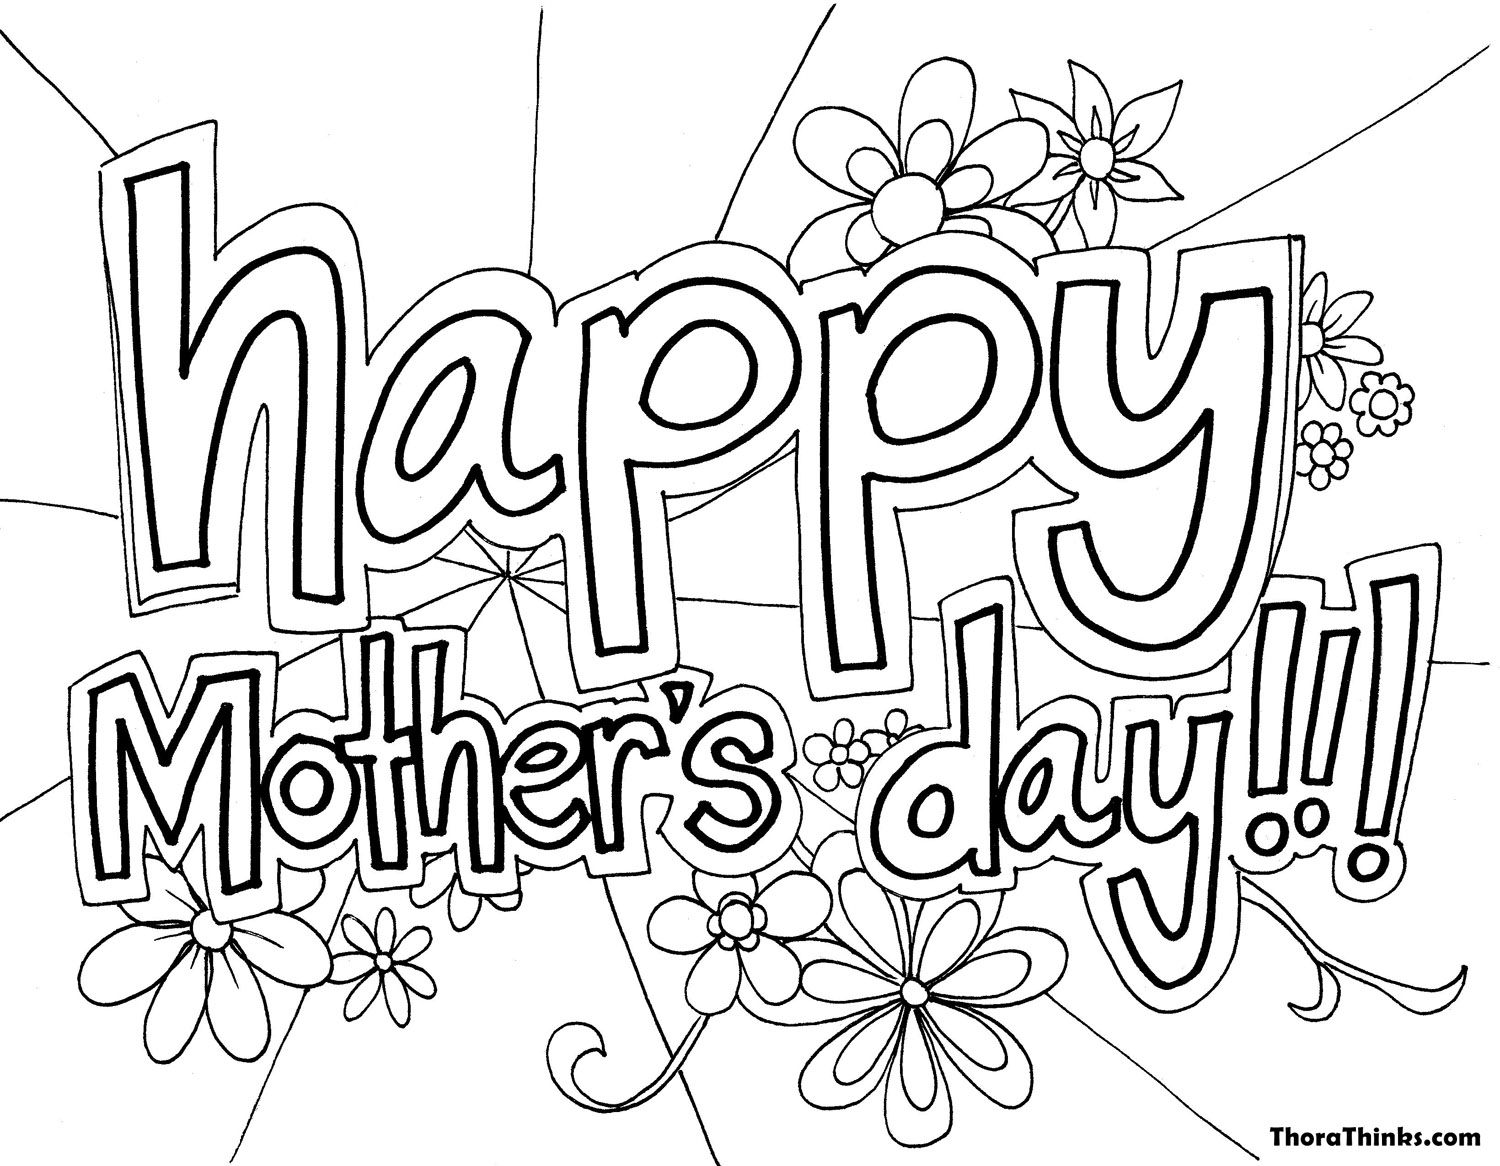 Free Printable Happy Mothers Day Coloring In Sheet For ChildrenPrint Out Ideas Cards